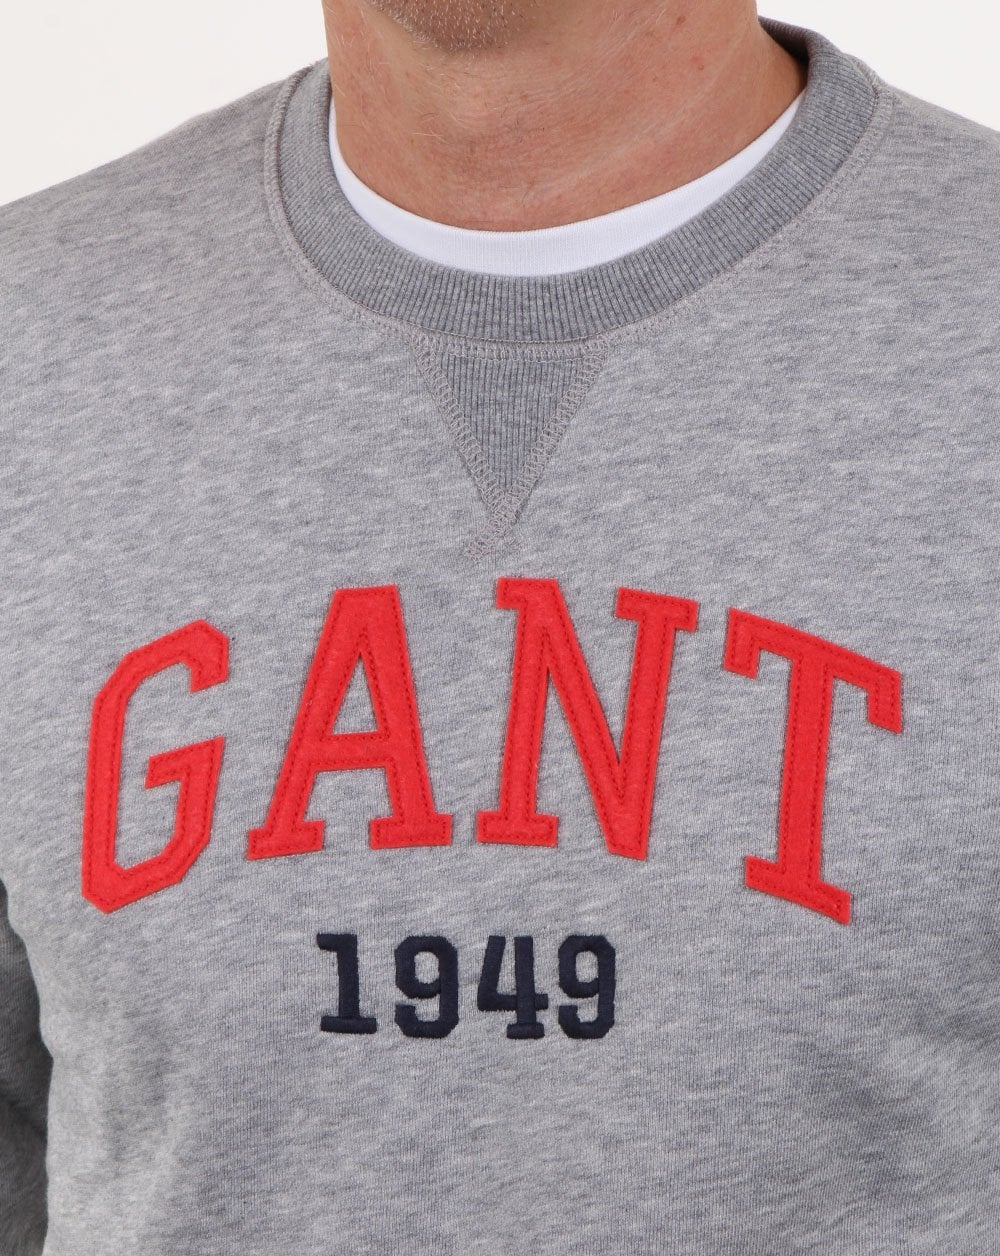 Gant Graphic Crew Neck Sweatshirt Grey Melange Mens Sweatshirt